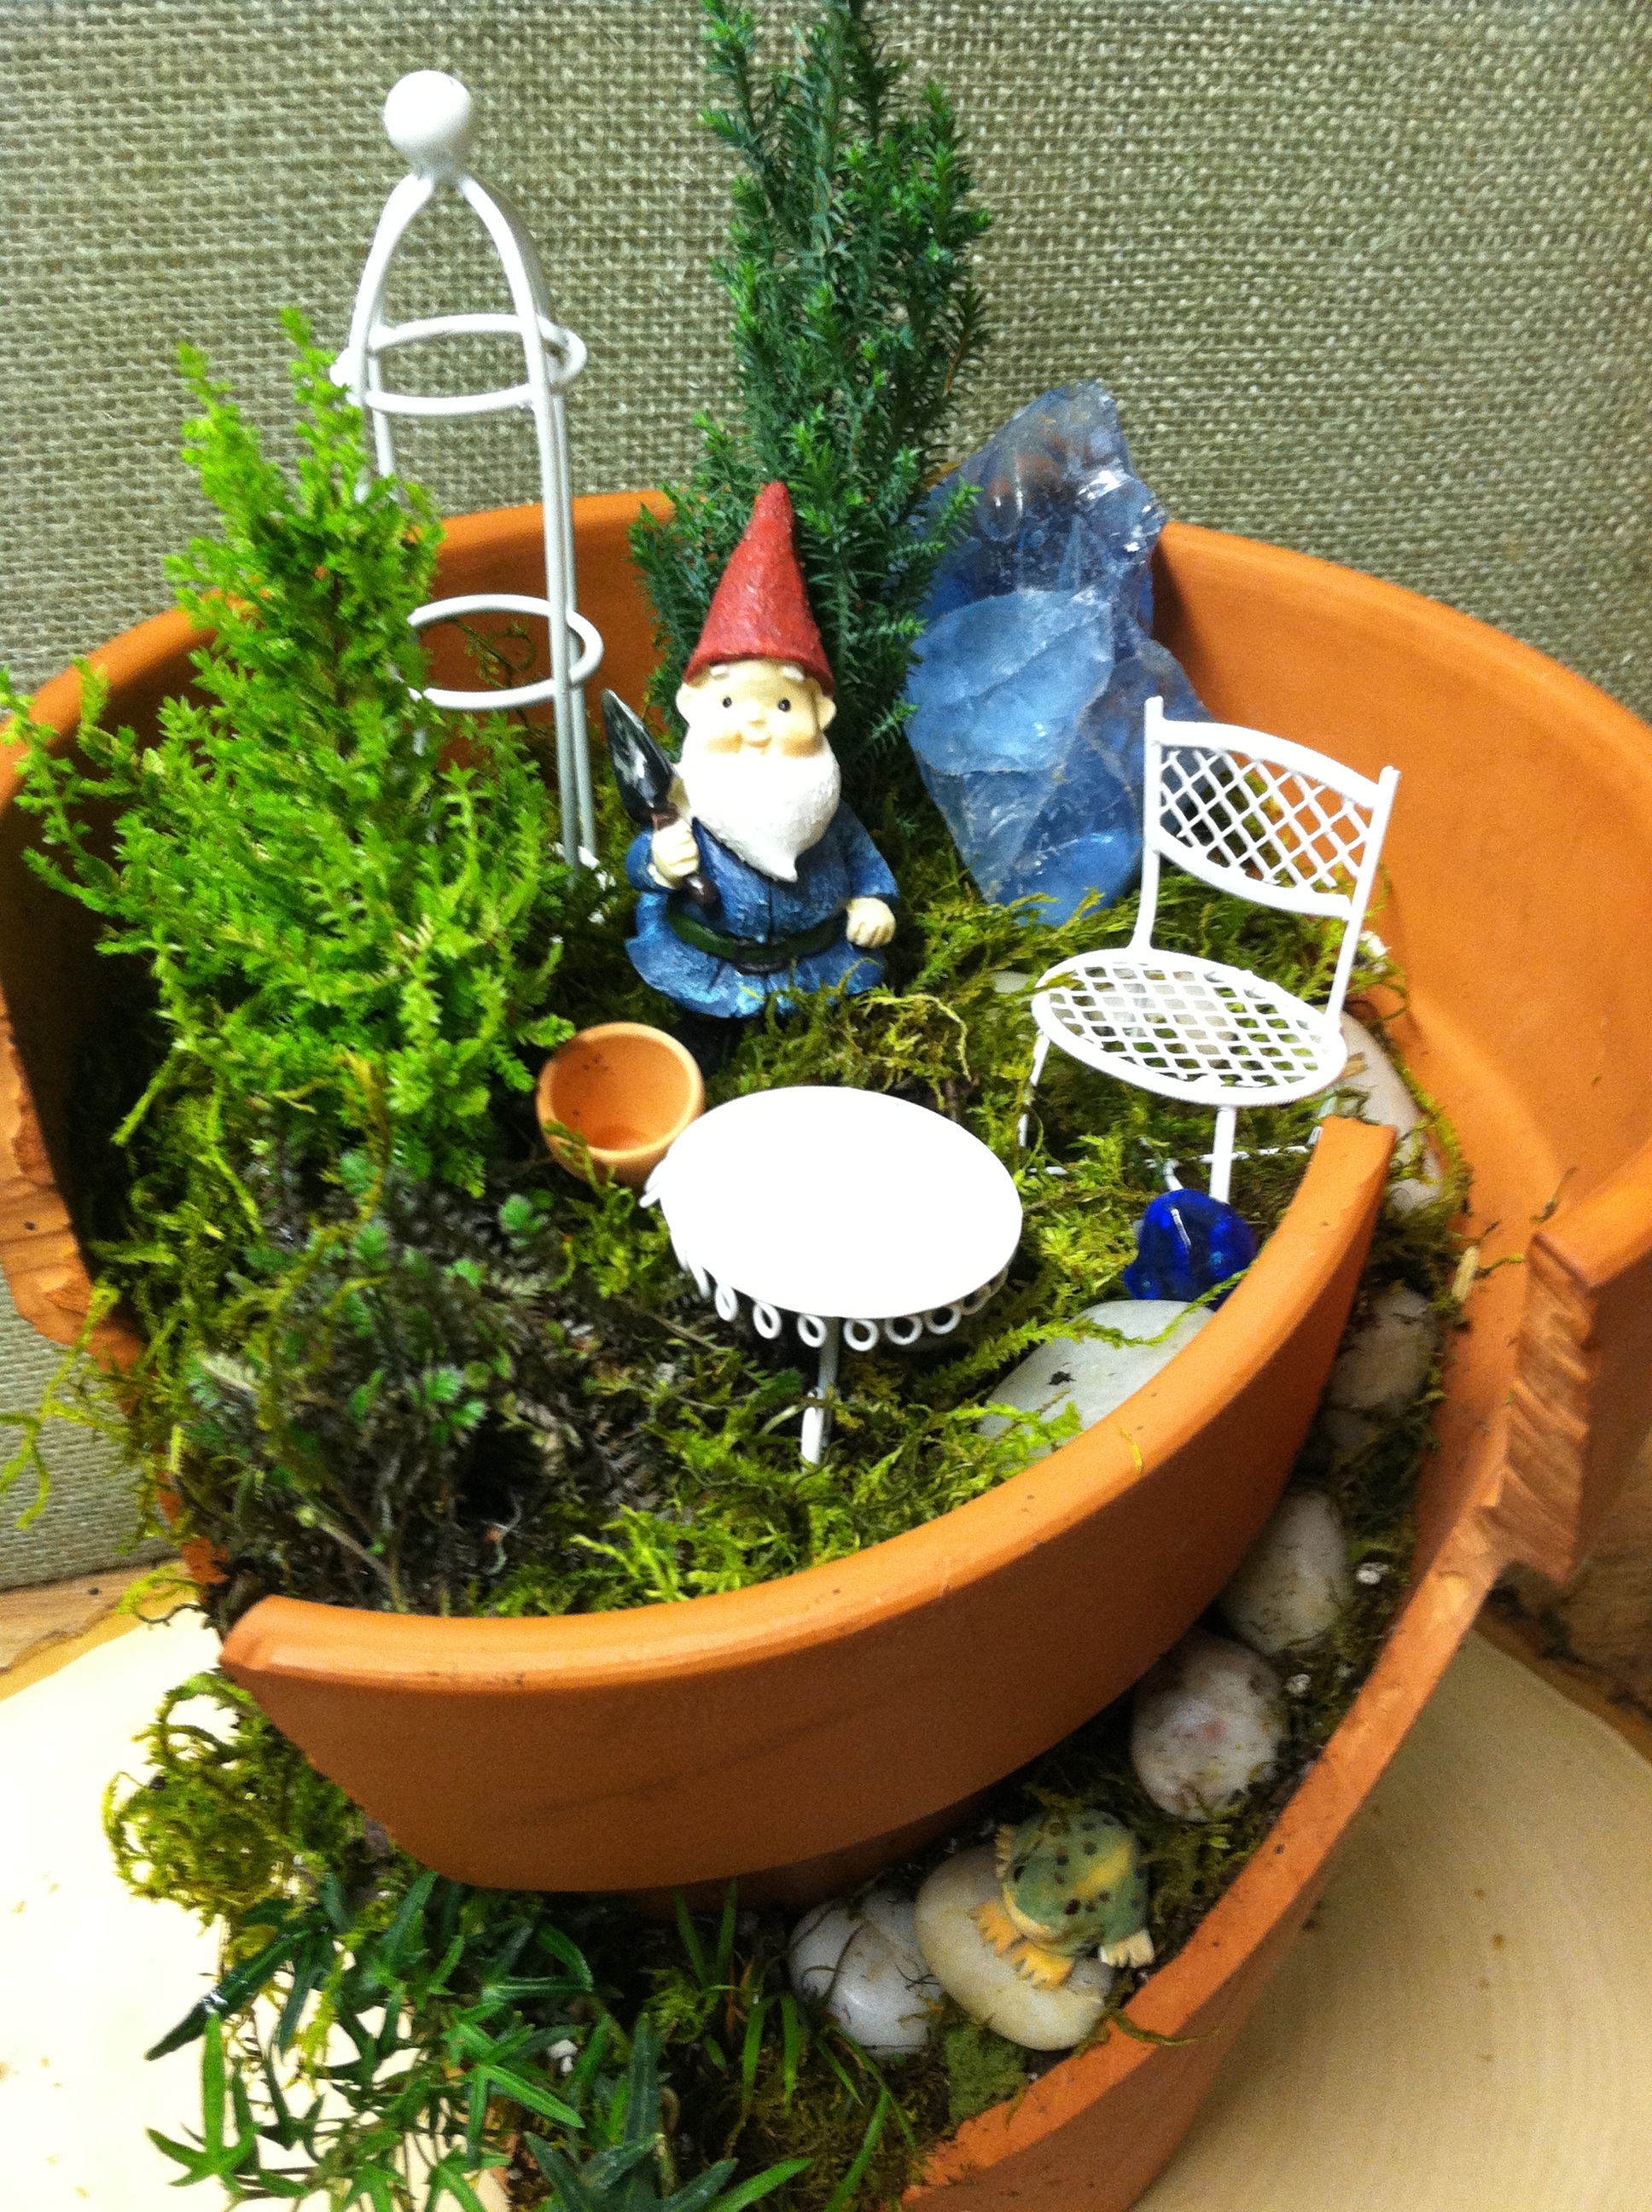 Gnome Garden Ideas large resin garden gnome collection accessories Broken Pot Gnome Garden